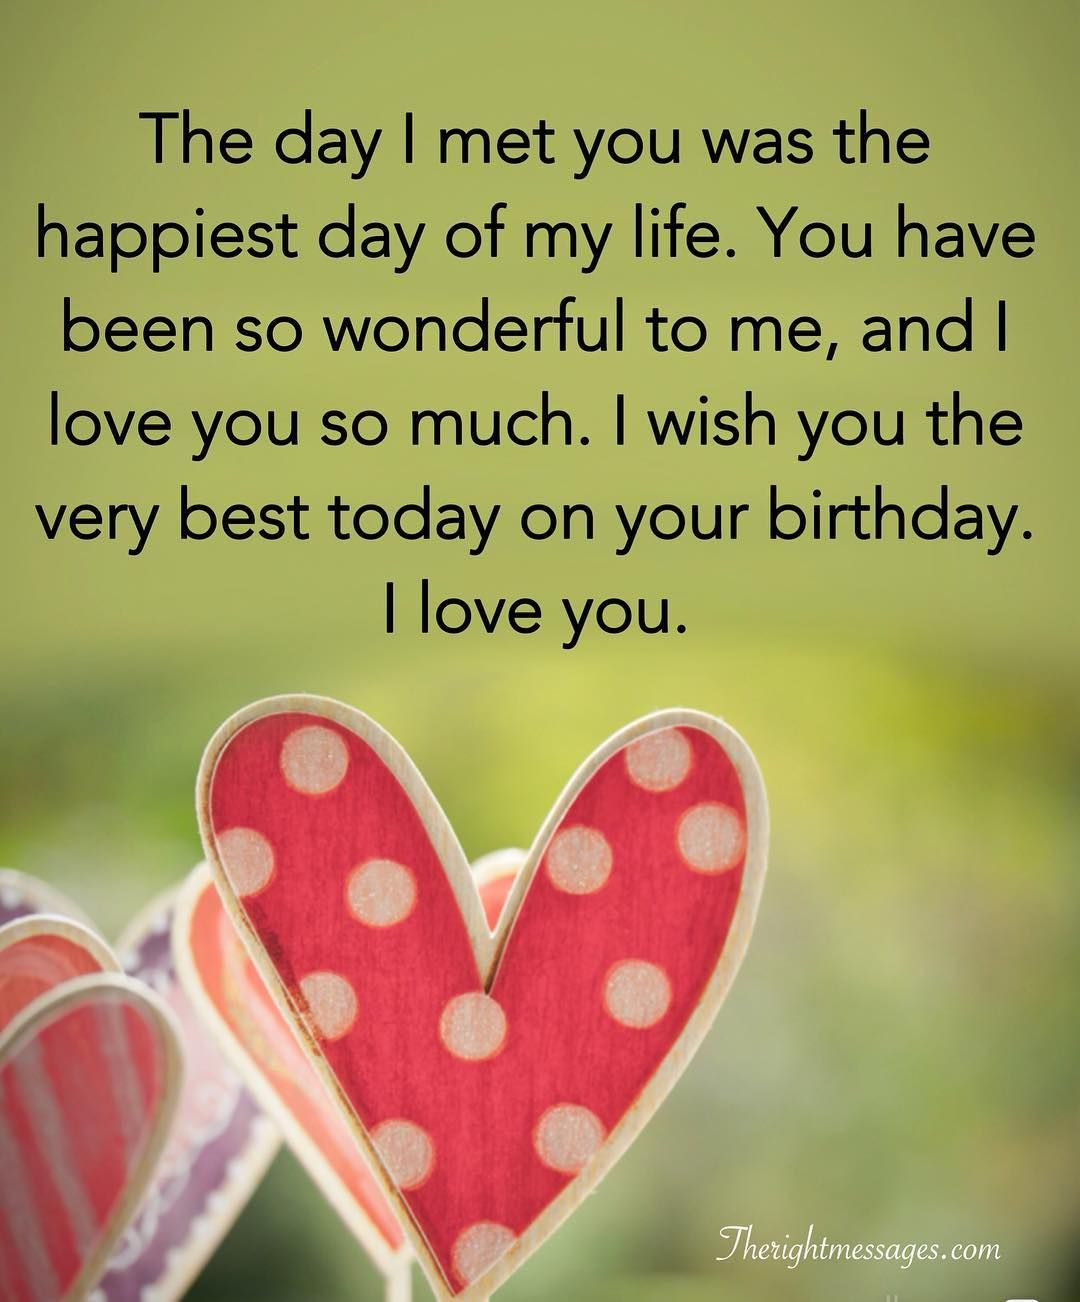 Short And Long Romantic Birthday Wishes For Boyfriend